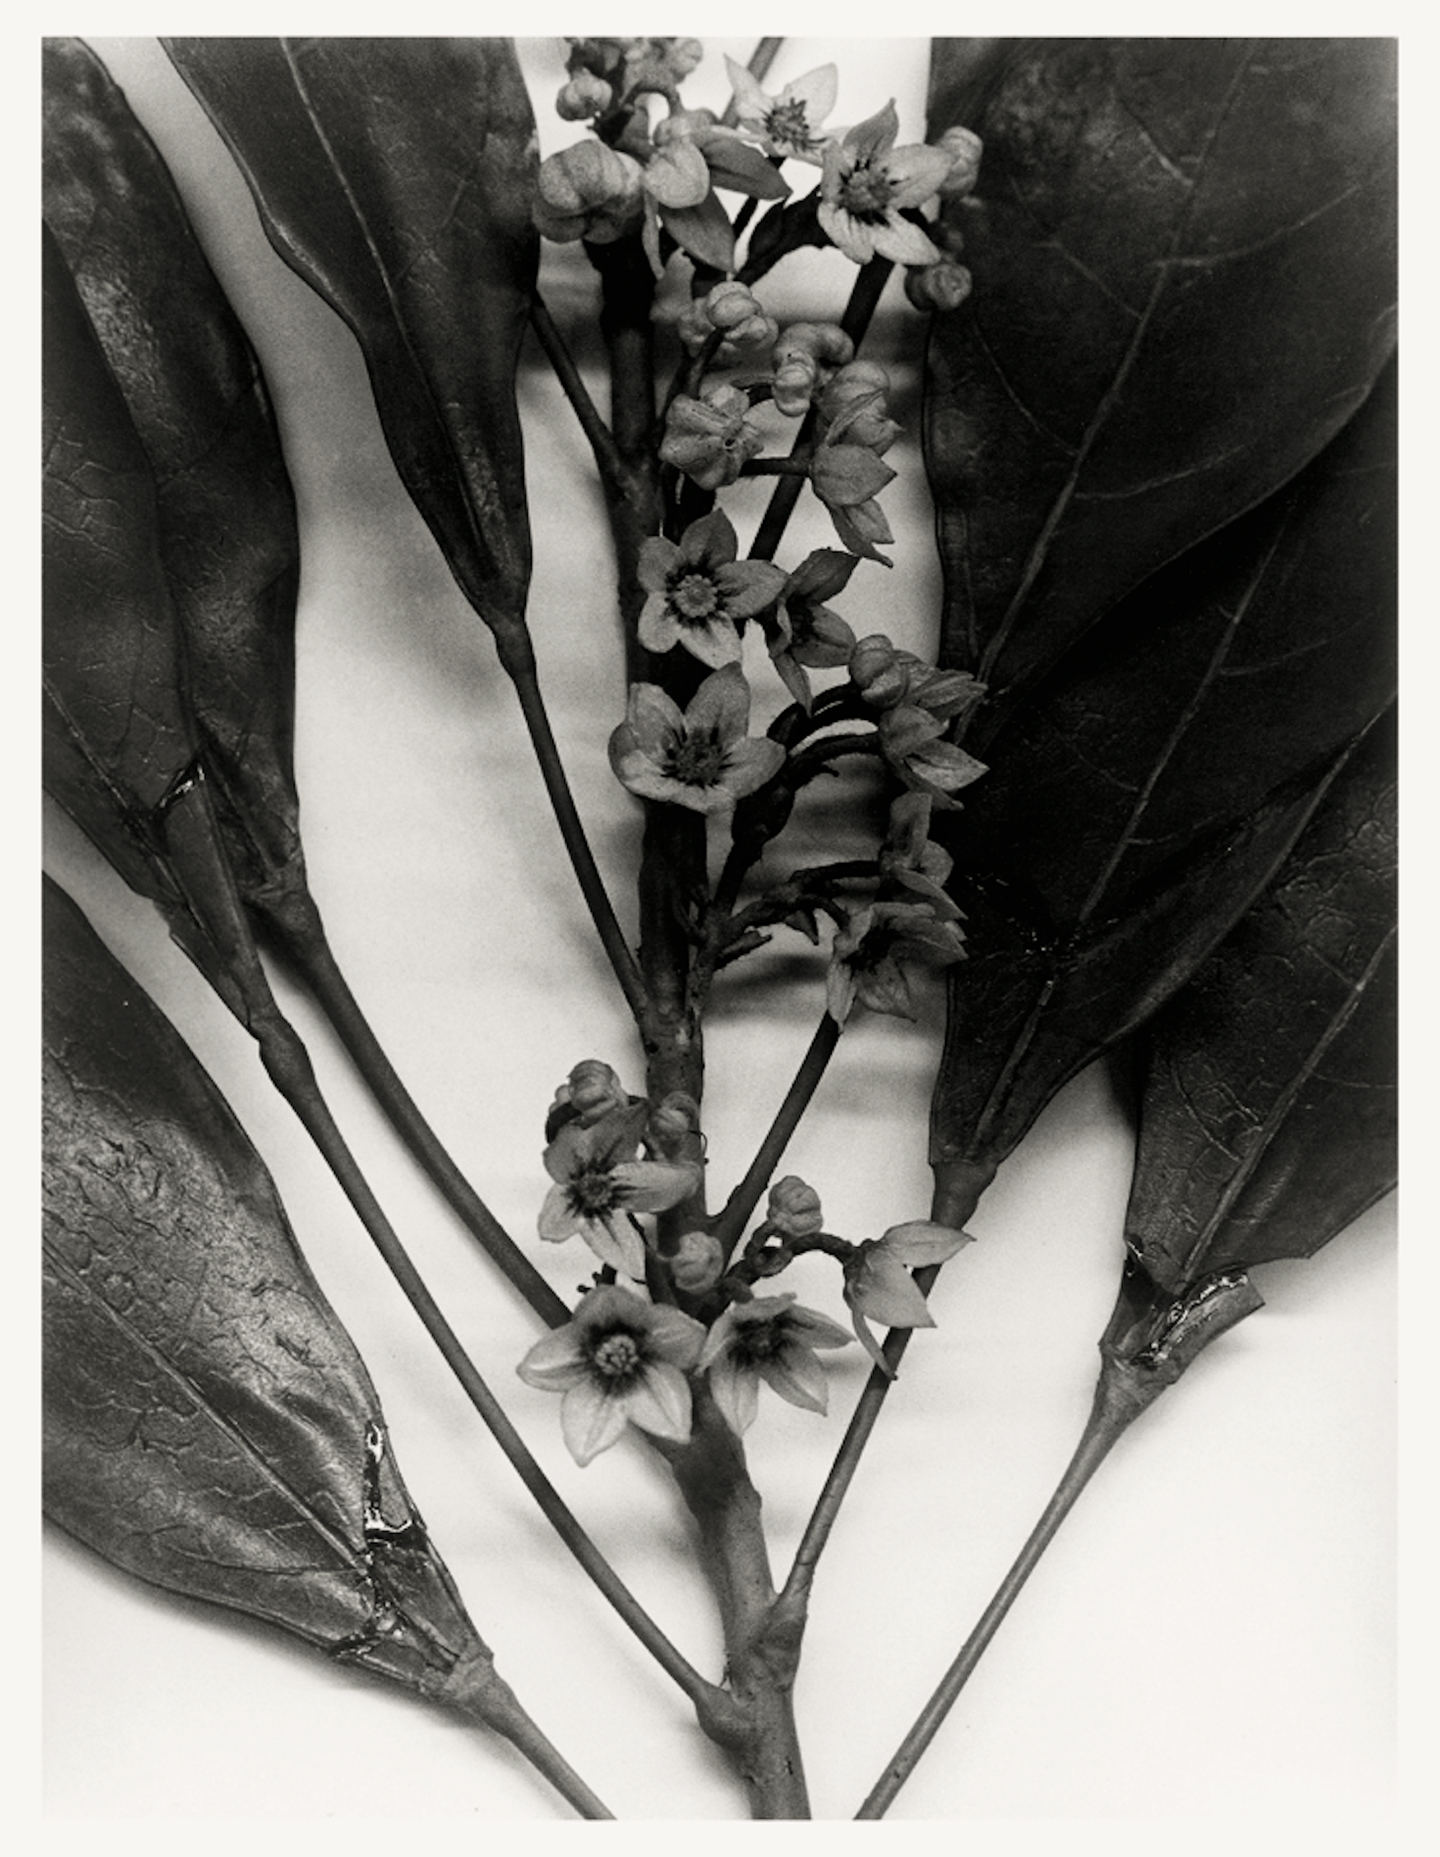 Christopher Williams, Angola, 1989, Blaschka Model 439, 1894, Genus no. 5091, Family, Sterculiaceae Cola acuminate (Beauv.) Schott and Endl., Cola Nut, Goora Nut, 1989, from the series Angola to Vietnam*, 1989. Courtesy: the artist and Galerie Gisela Capitain, Cologne